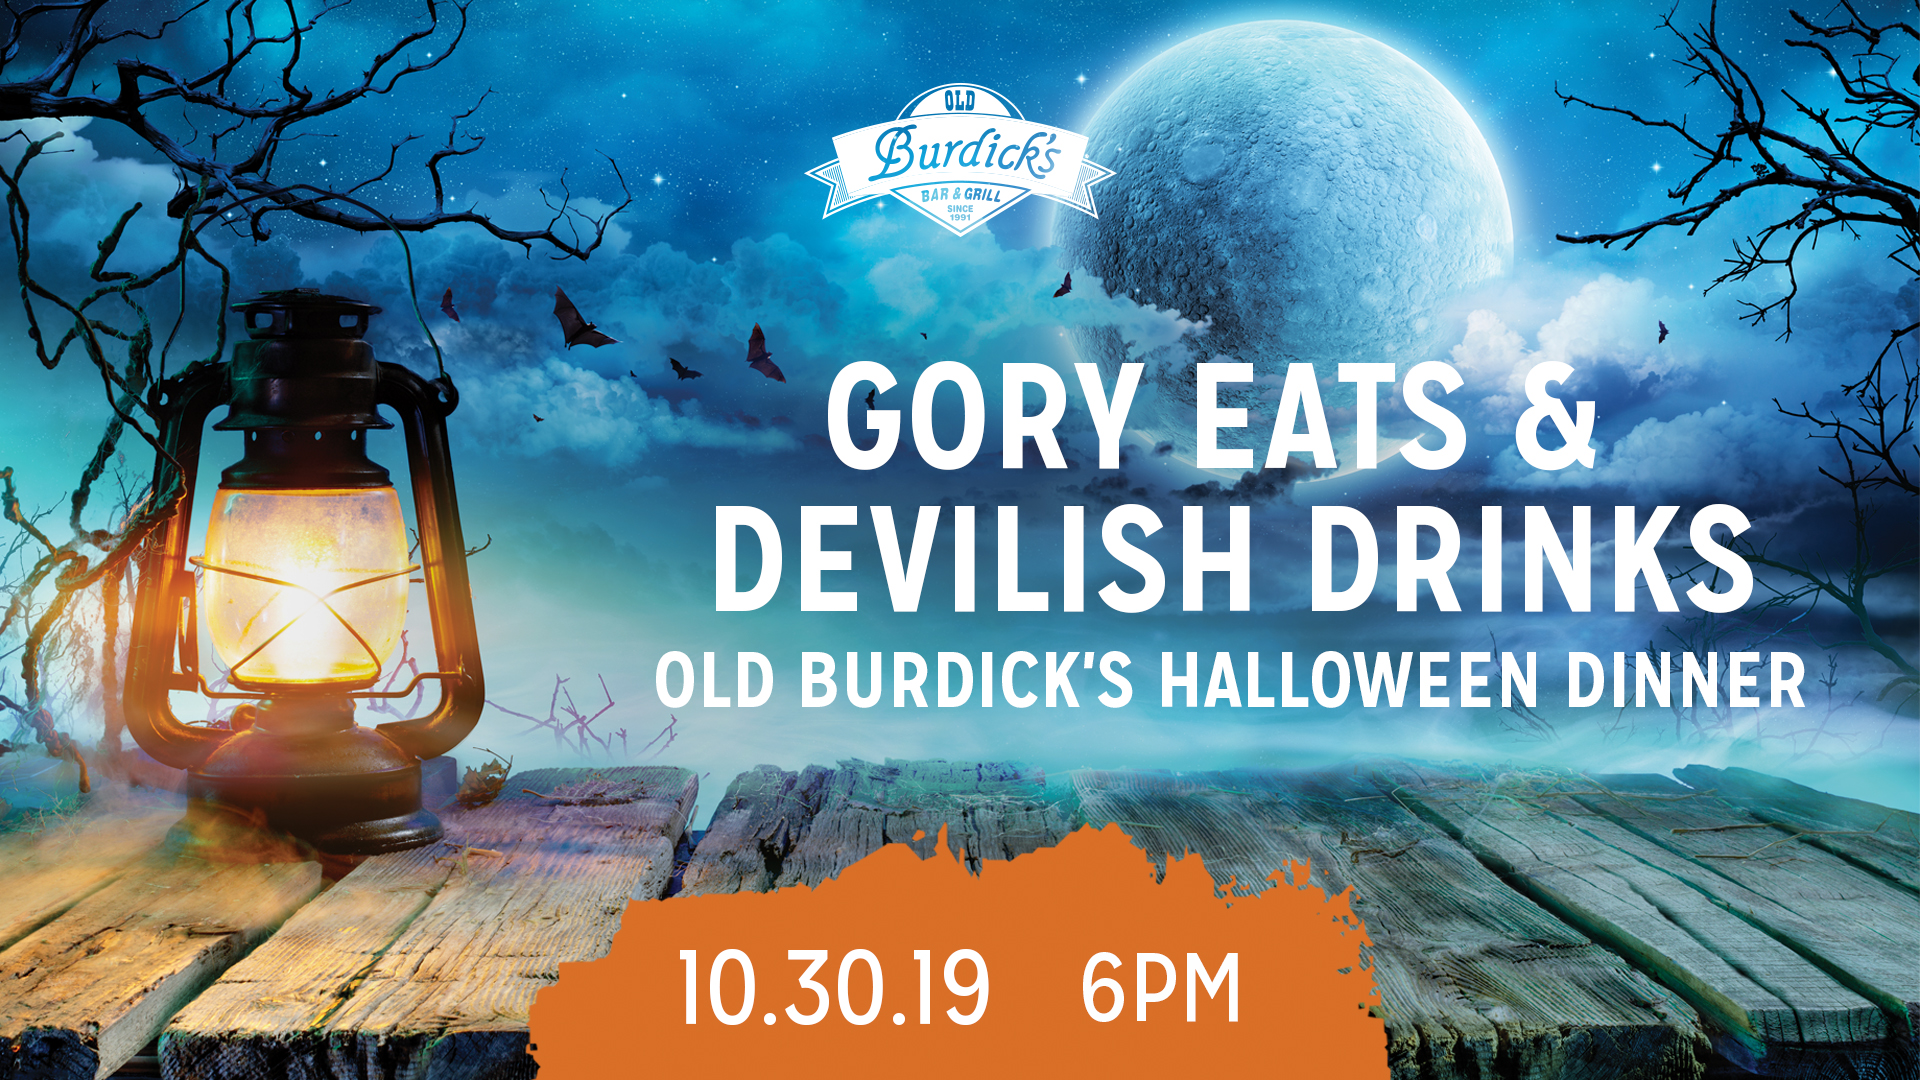 Gory Eats & Devilish Drinks Halloween Dinner